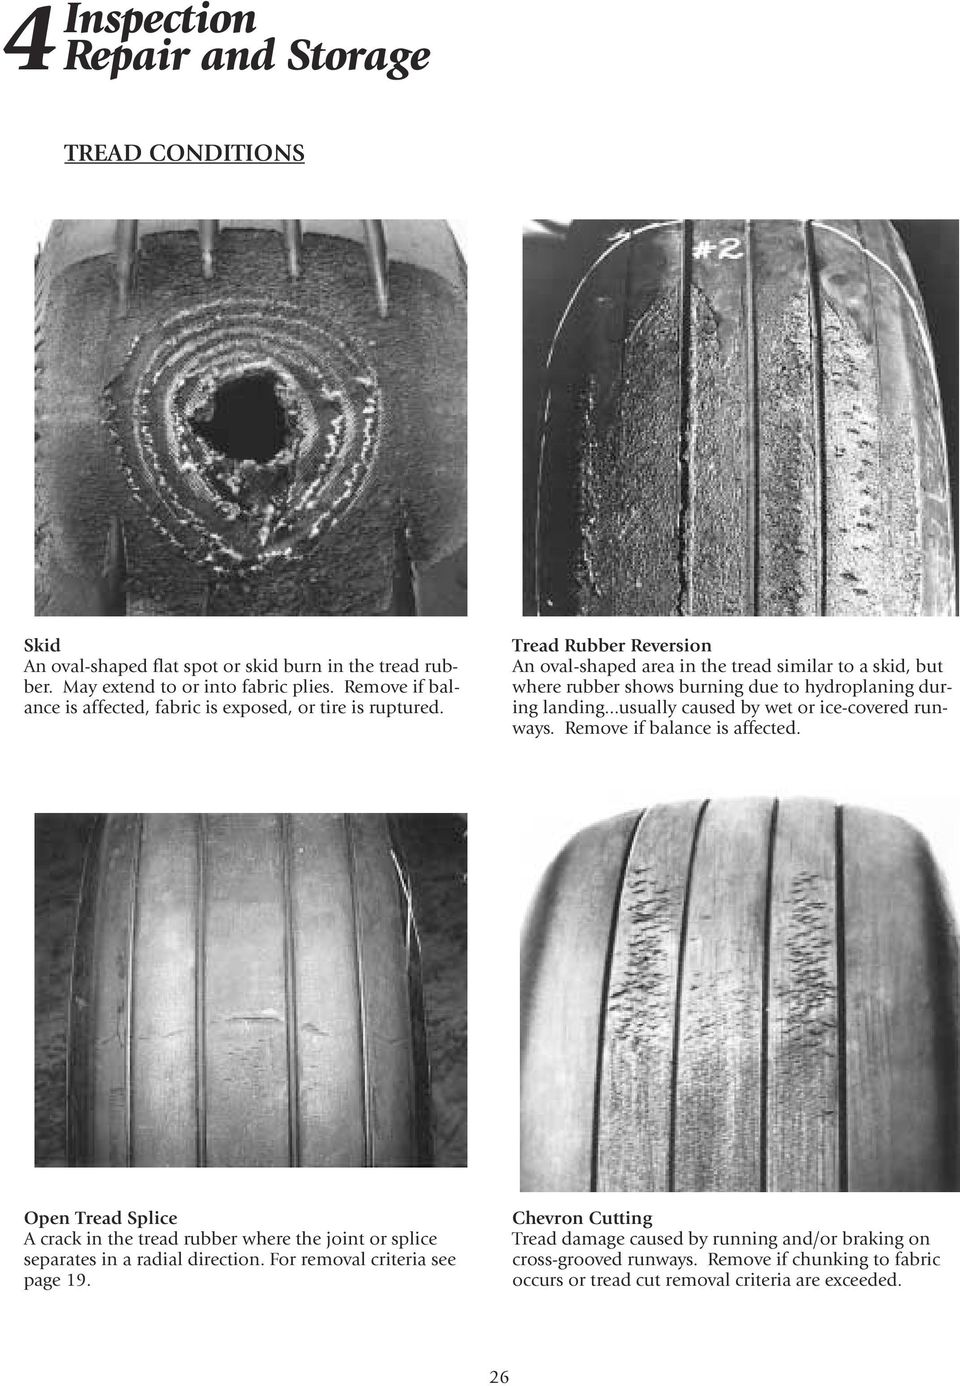 Tread Rubber Reversion An oval-shaped area in the tread similar to a skid, but where rubber shows burning due to hydroplaning during landing.